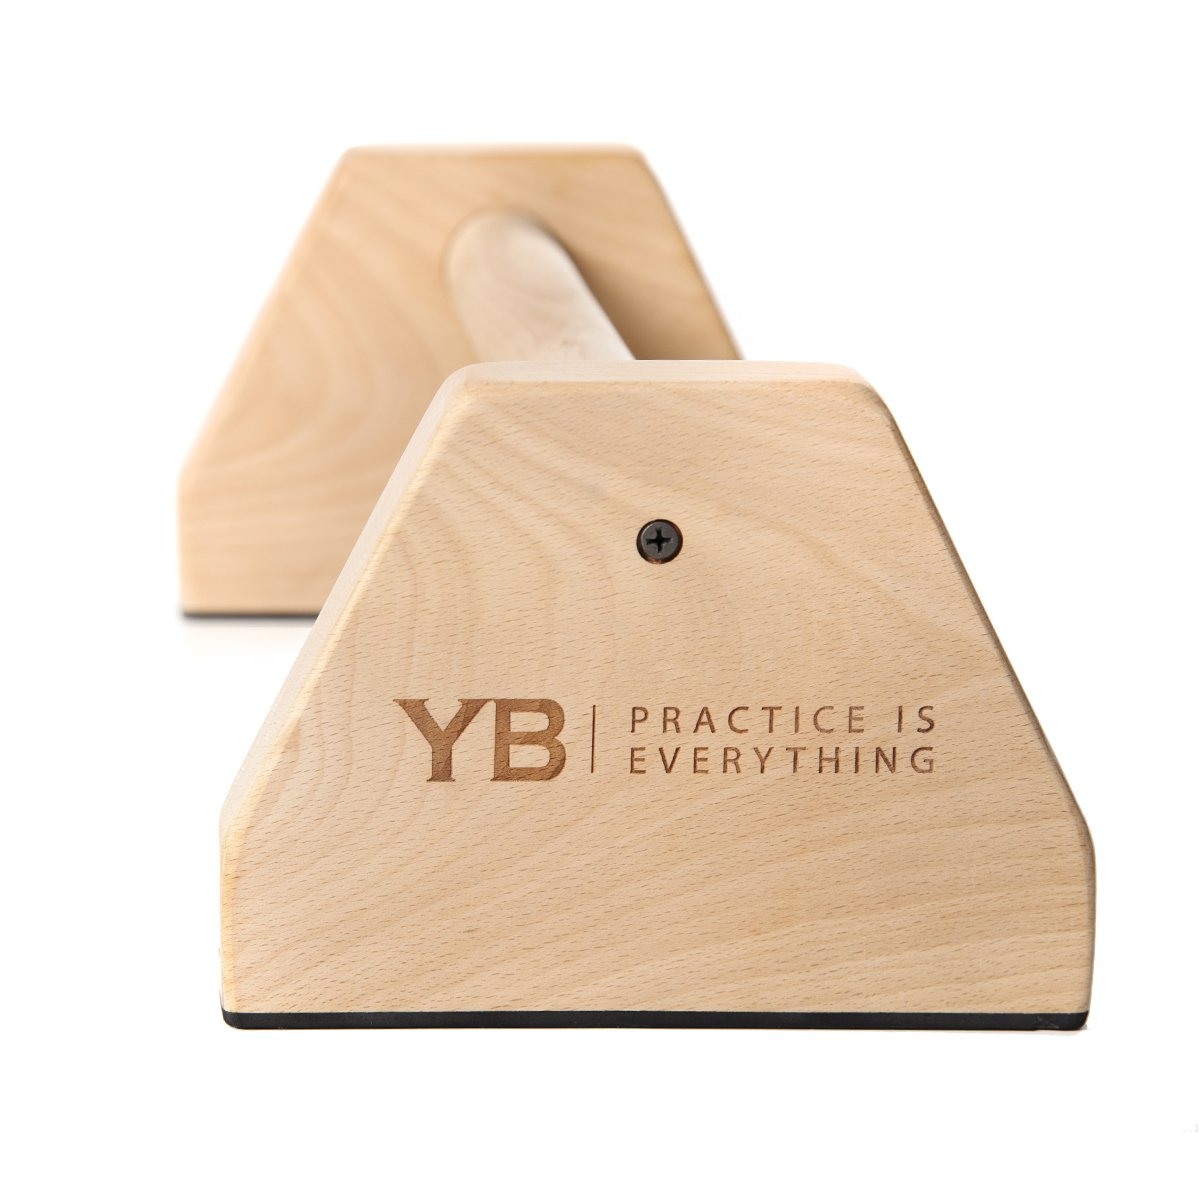 YOGABODY Birch Wood Parallettes (Set of 2)   Beautiful, Smooth, Non-Slip Yoga & Gymnastic Training Tool for L-Sits, Lolasana, Handstand Pushups, Jump Backs & More by YOGABODY (Image #7)